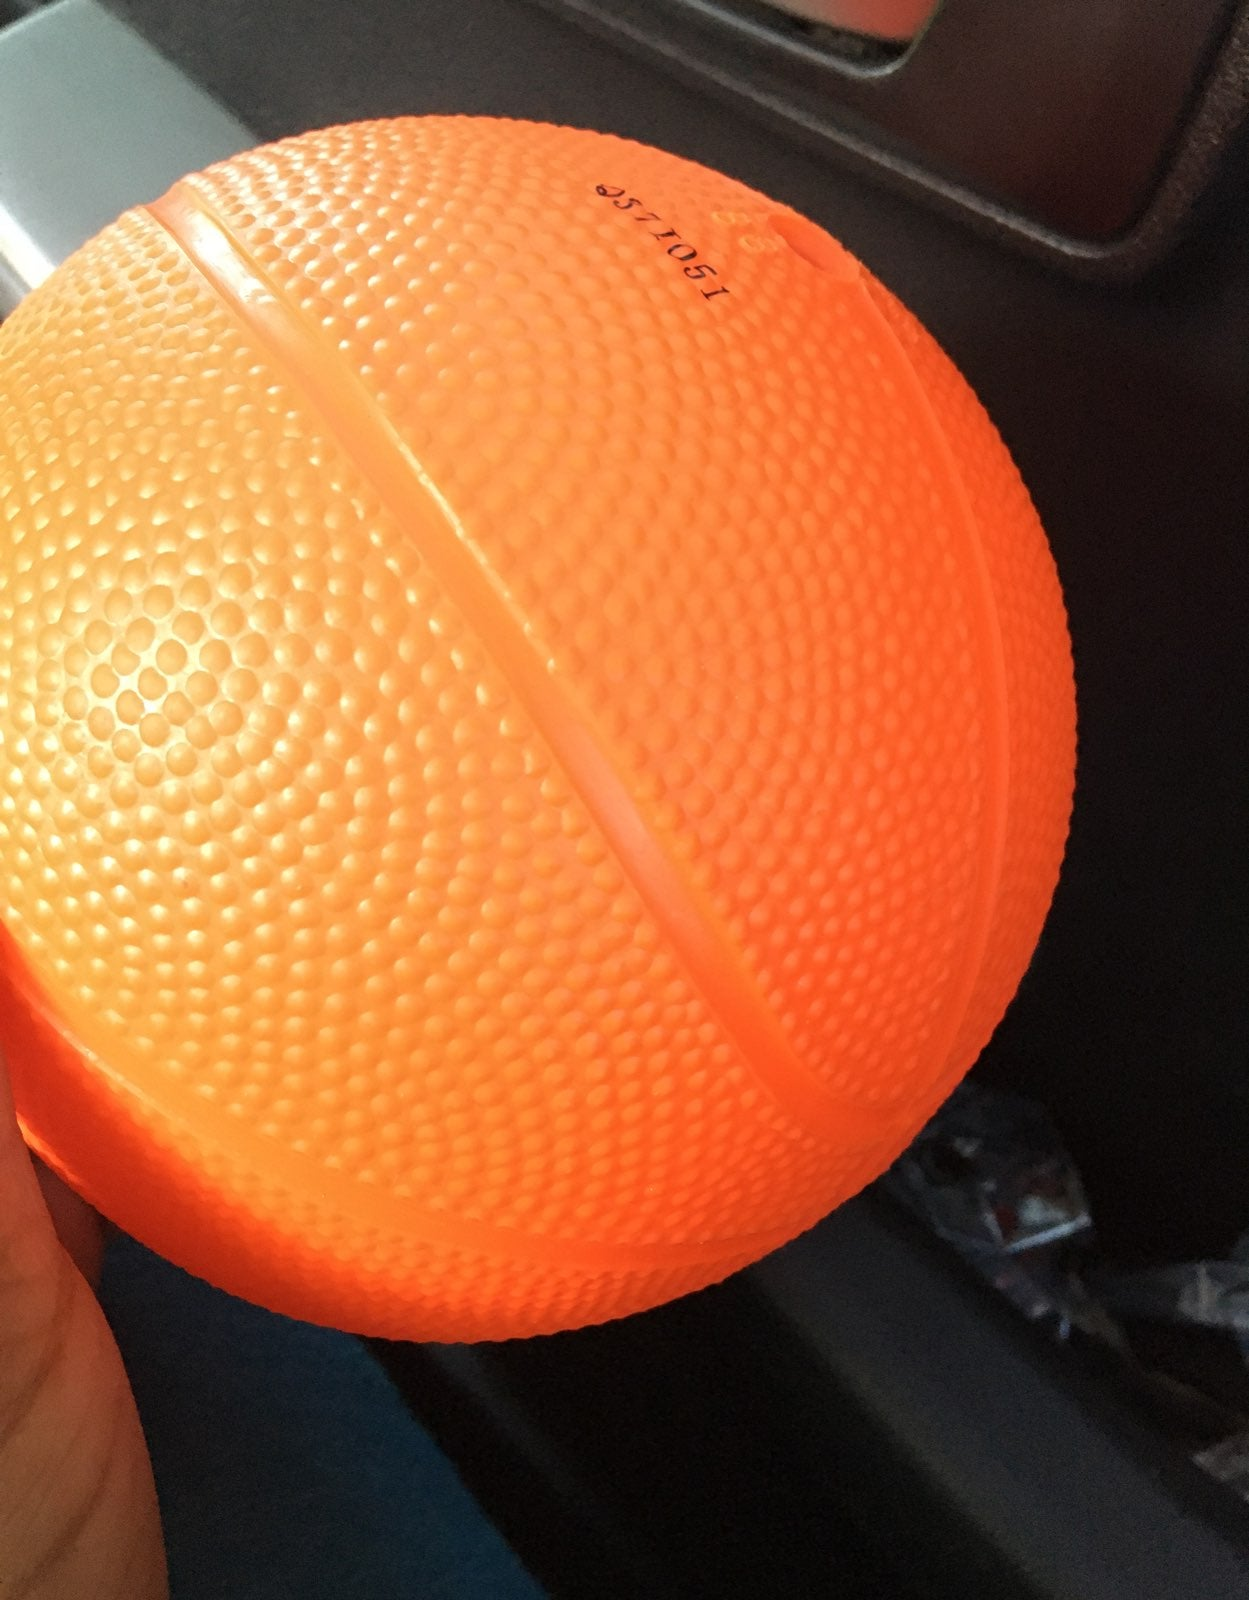 Im selling this orange ball that is new